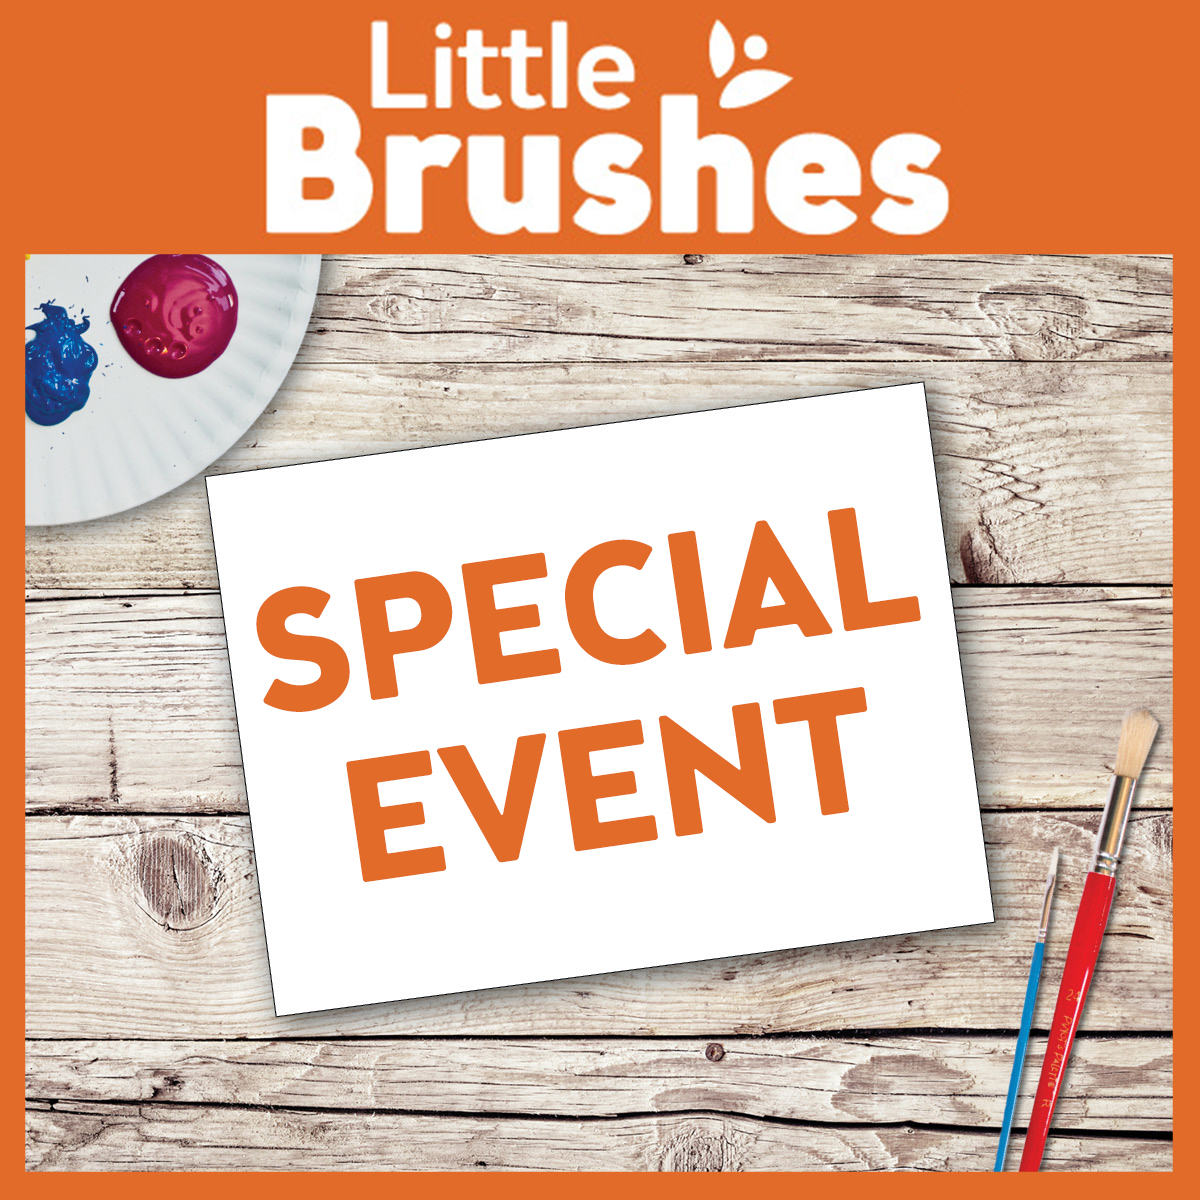 Little Brushes Special Event